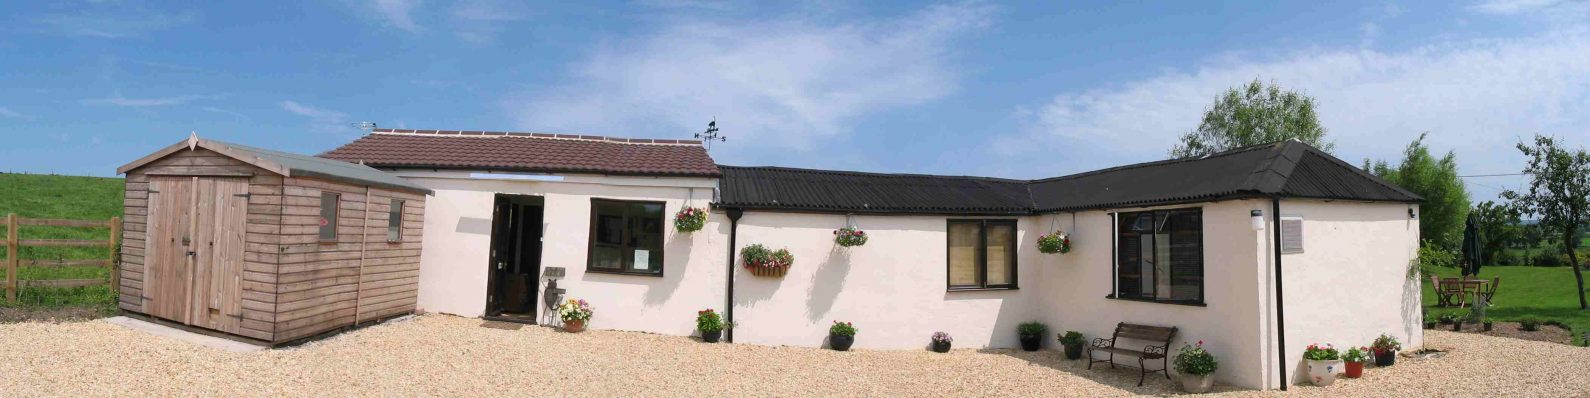 Cleeve Cats Cattery in Wiltshire near Melksham